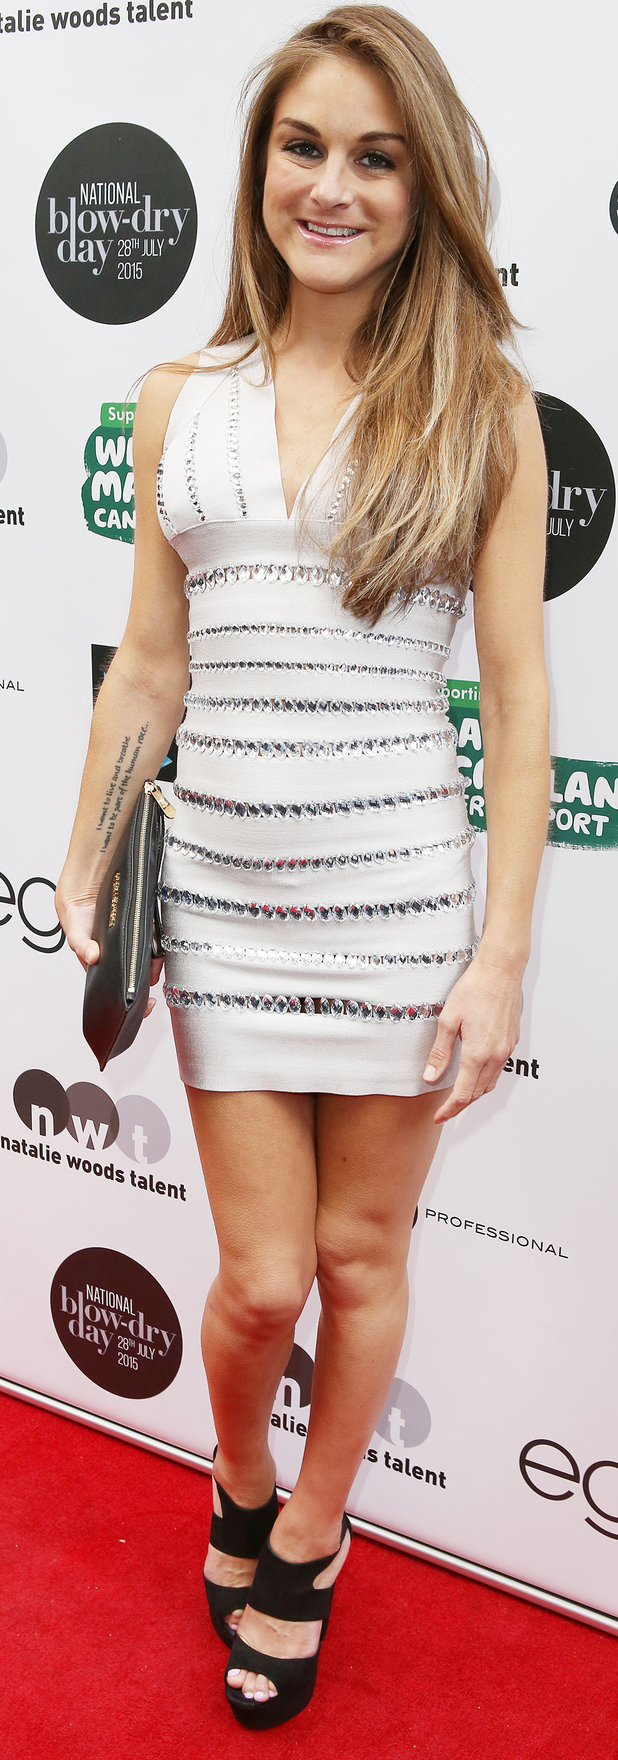 Nikki Grahame at the Macmillan cancer support party 26th August 2015